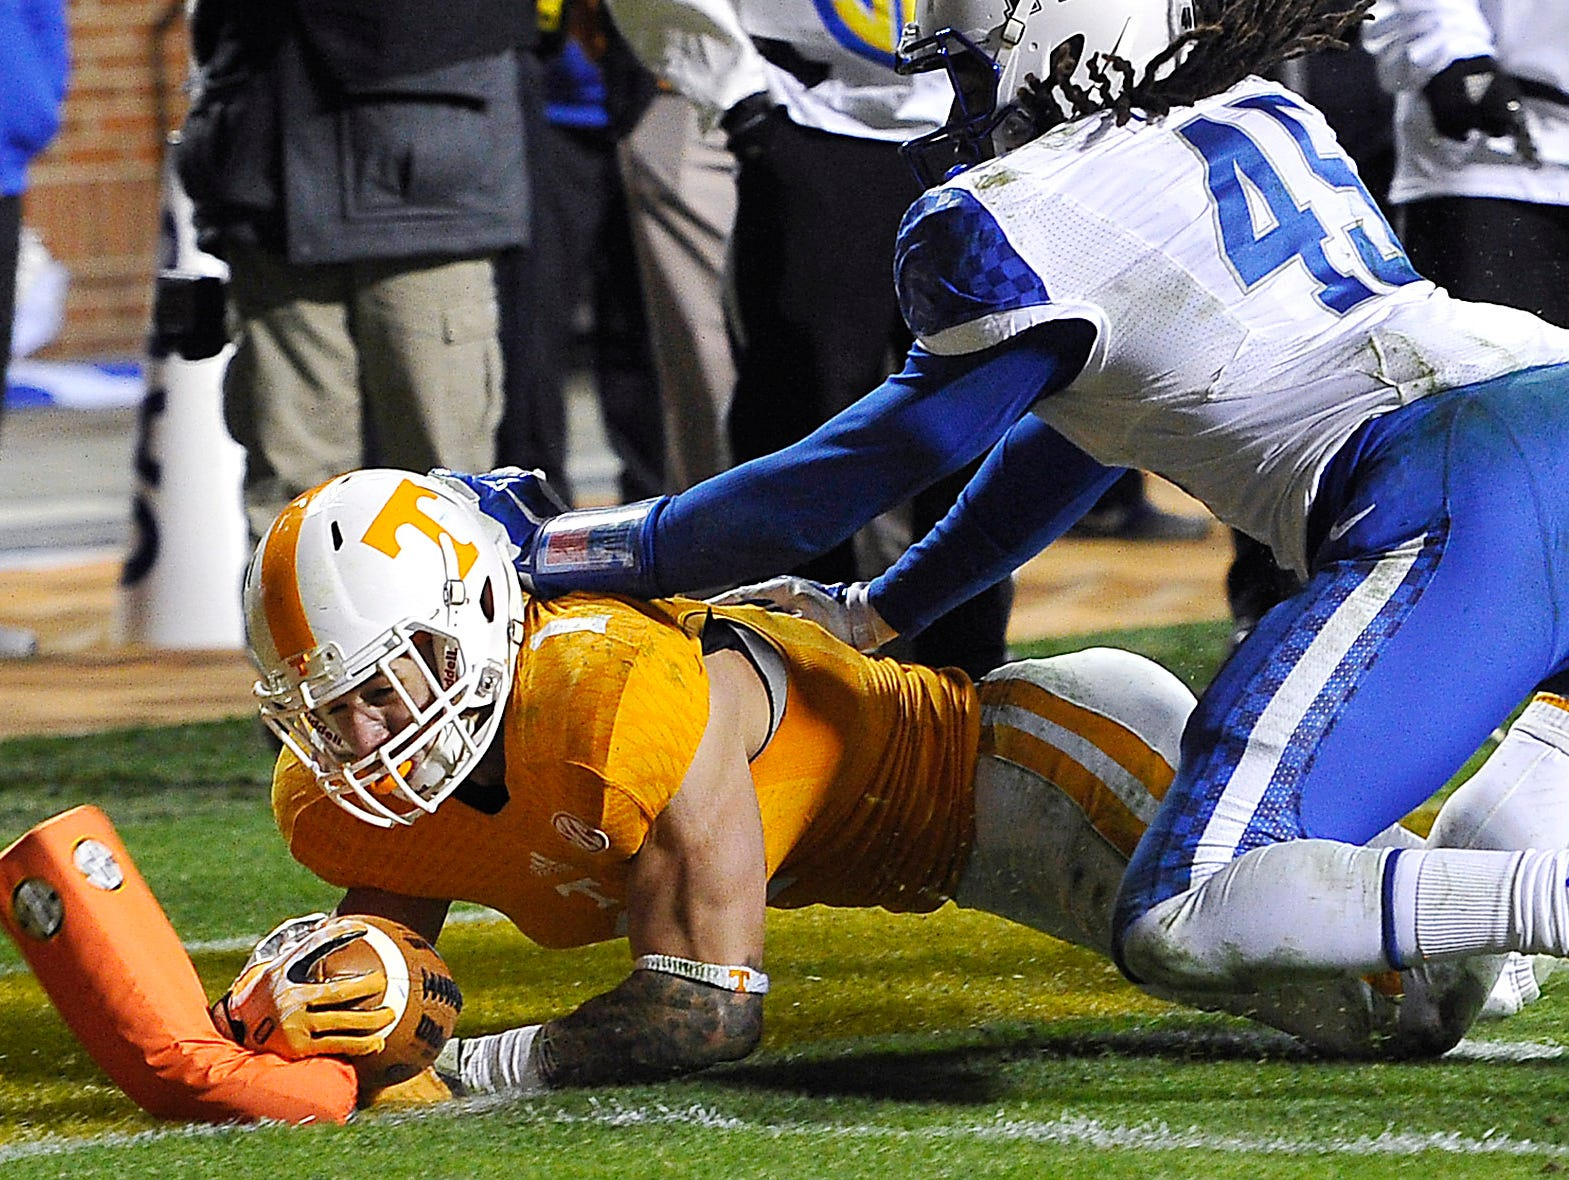 Tennessee running back Jalen Hurd (1) gets the ball in the end zone for a touchdown against Kentucky on Nov. 15, 2014.